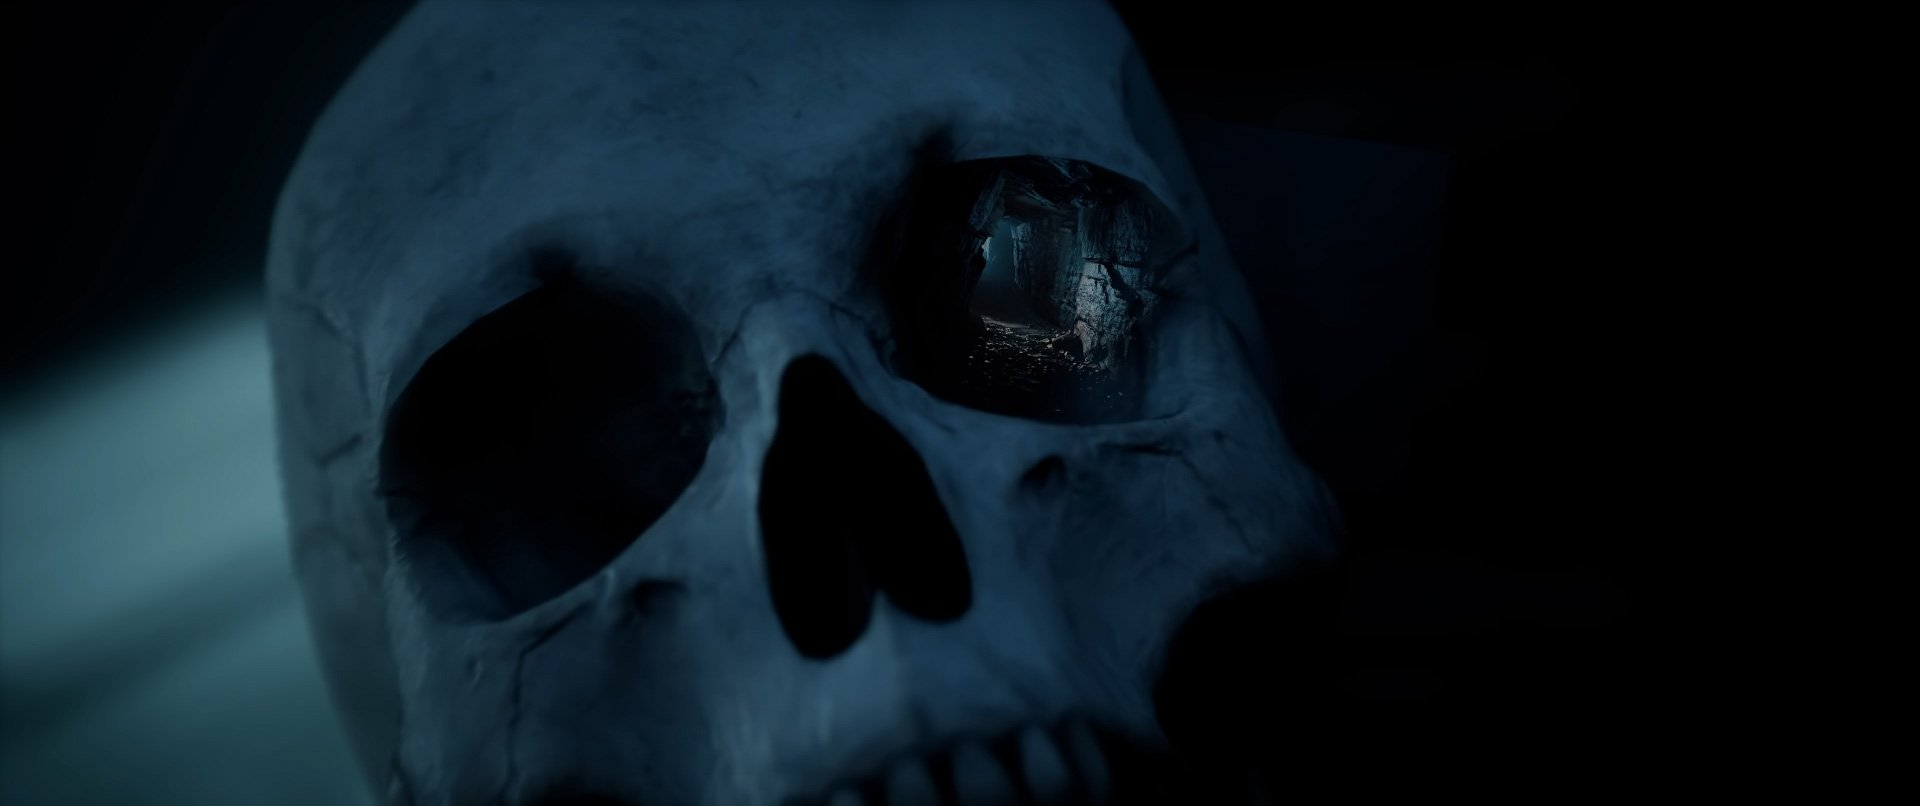 The Dark Pictures Anthology: House of Ashes almost showed its big bad threat screenshot